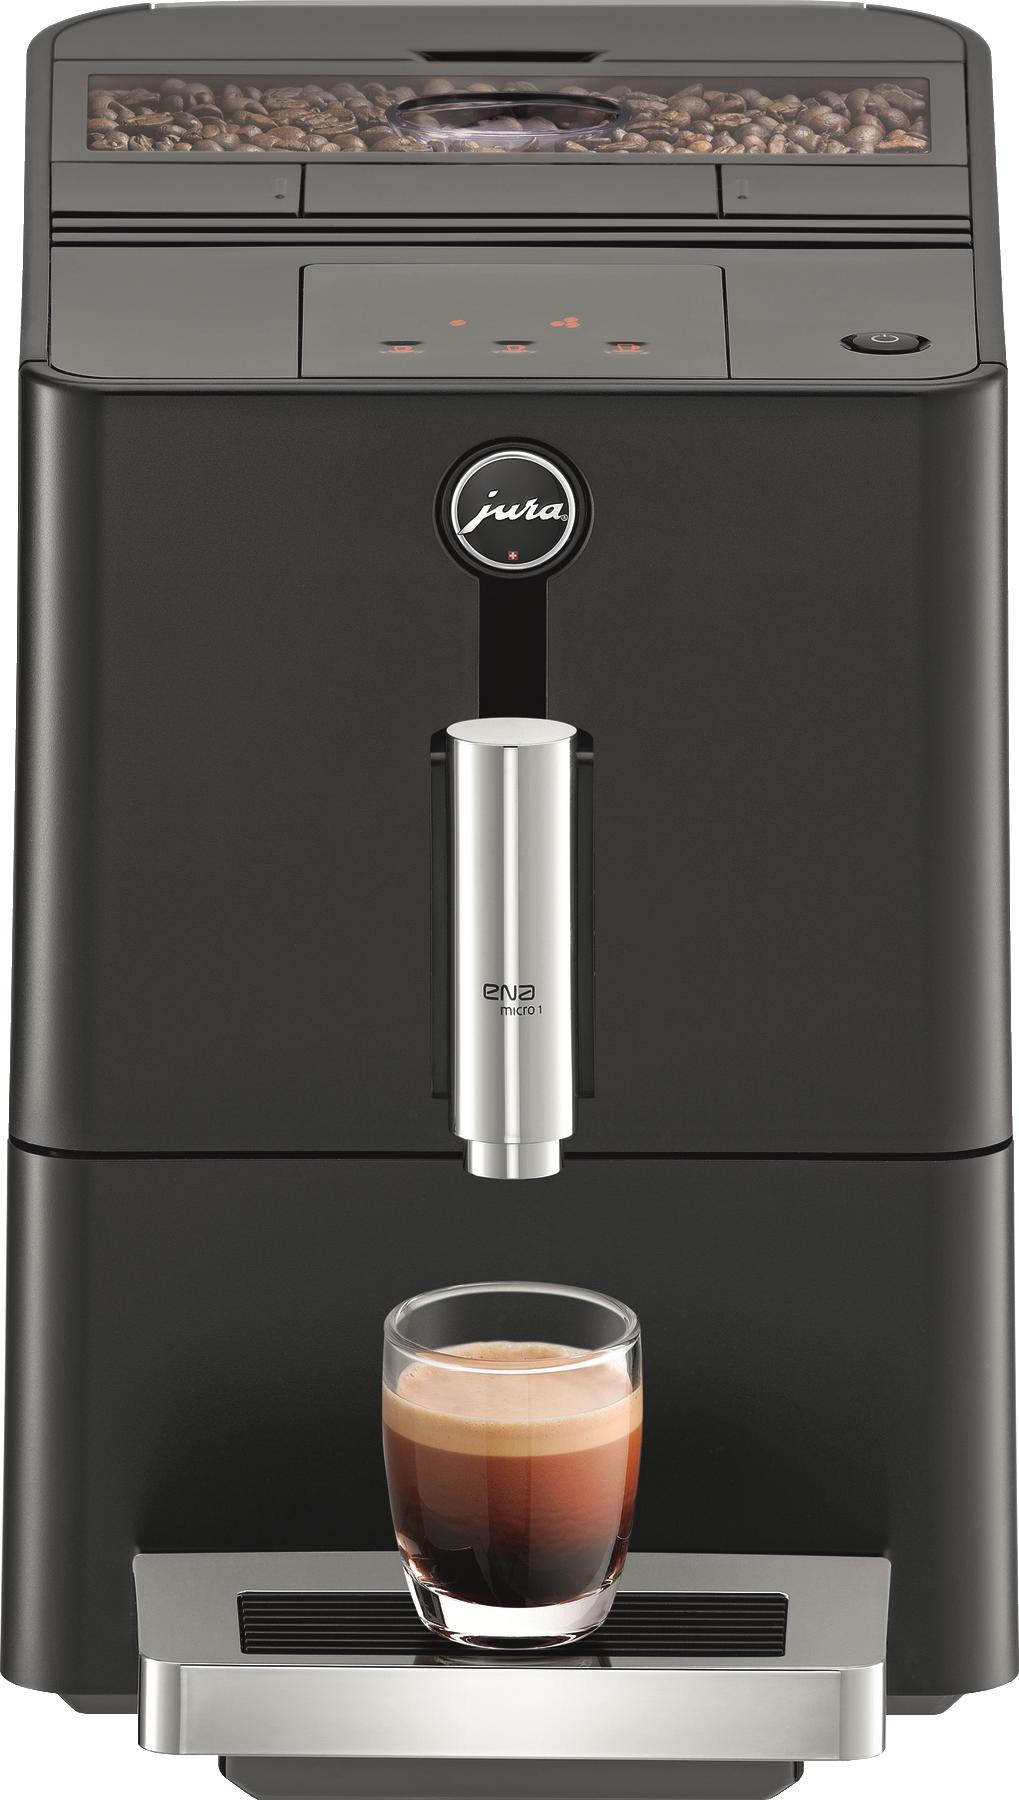 jura ena 5 vs jura ena micro 1 compare super automatic coffee machines. Black Bedroom Furniture Sets. Home Design Ideas